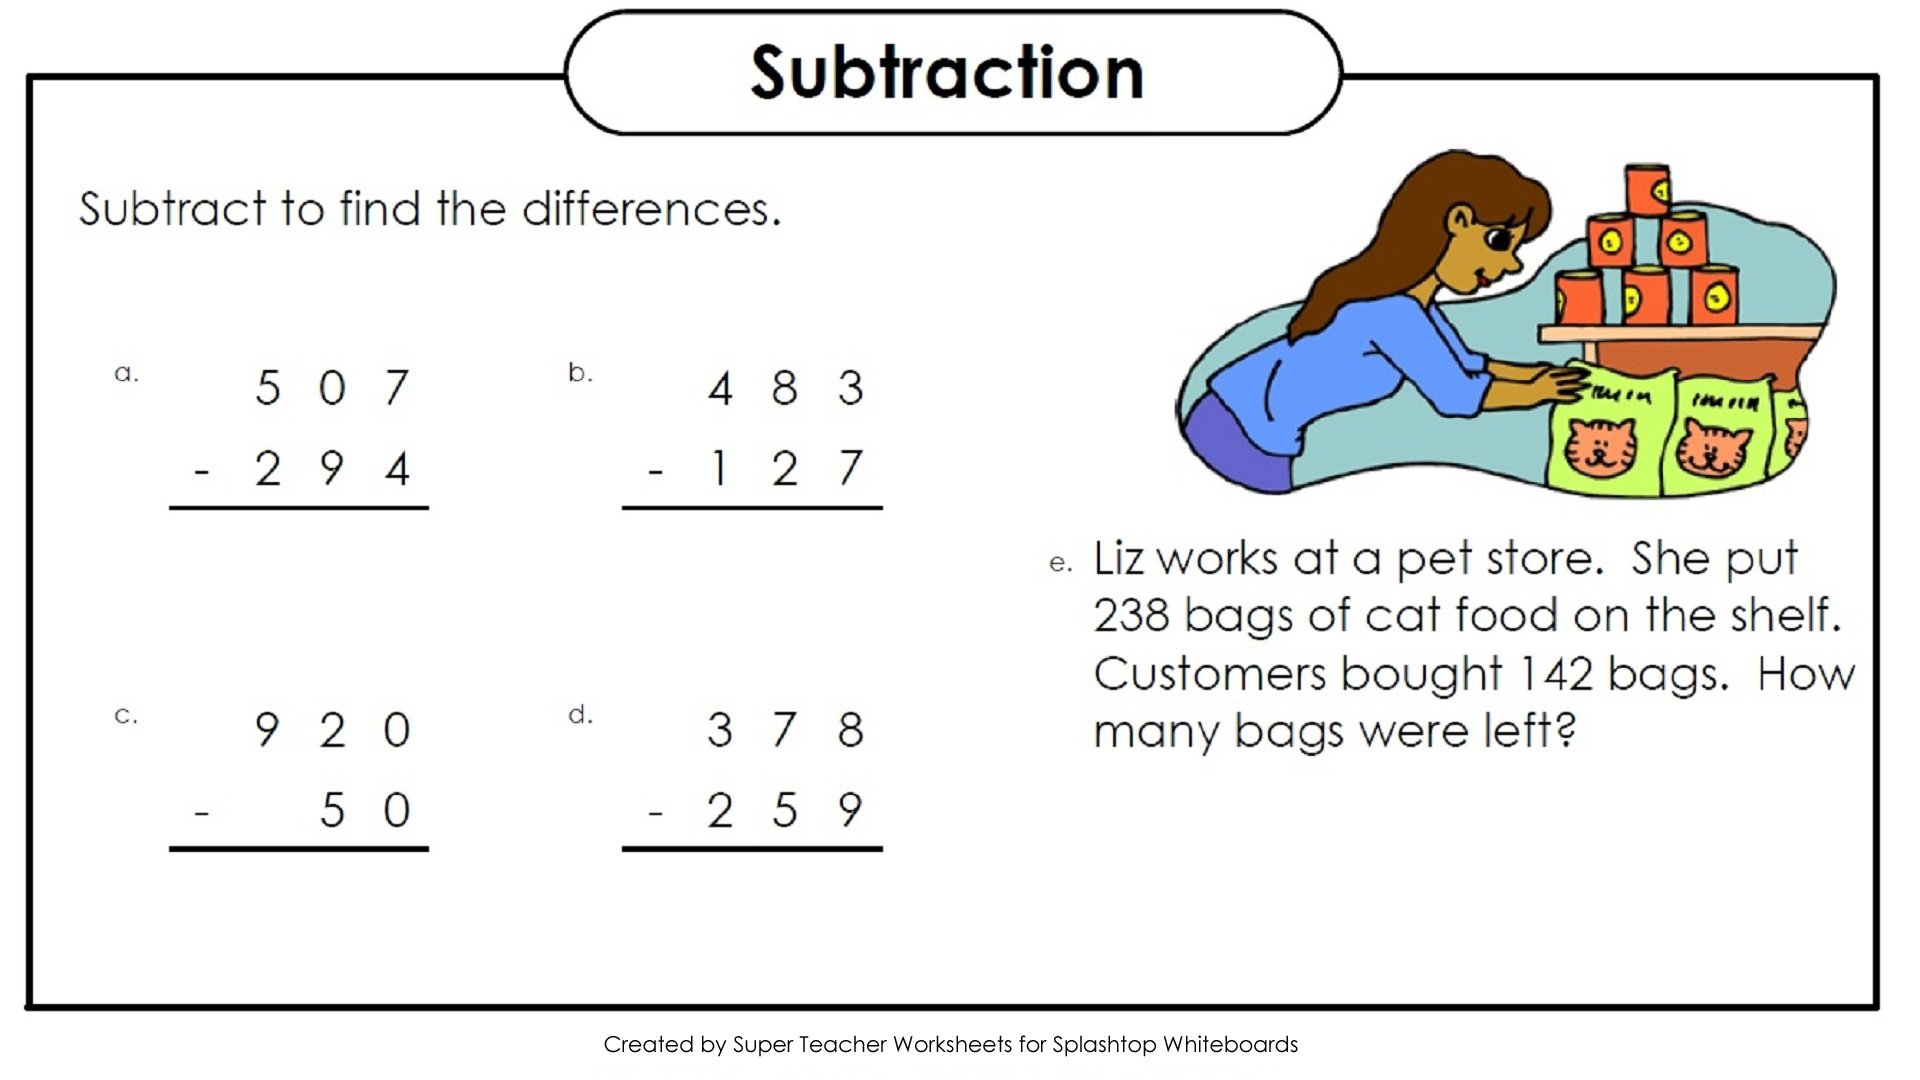 Worksheets Superteacher Worksheet whiteboard background graphics three digit subtraction